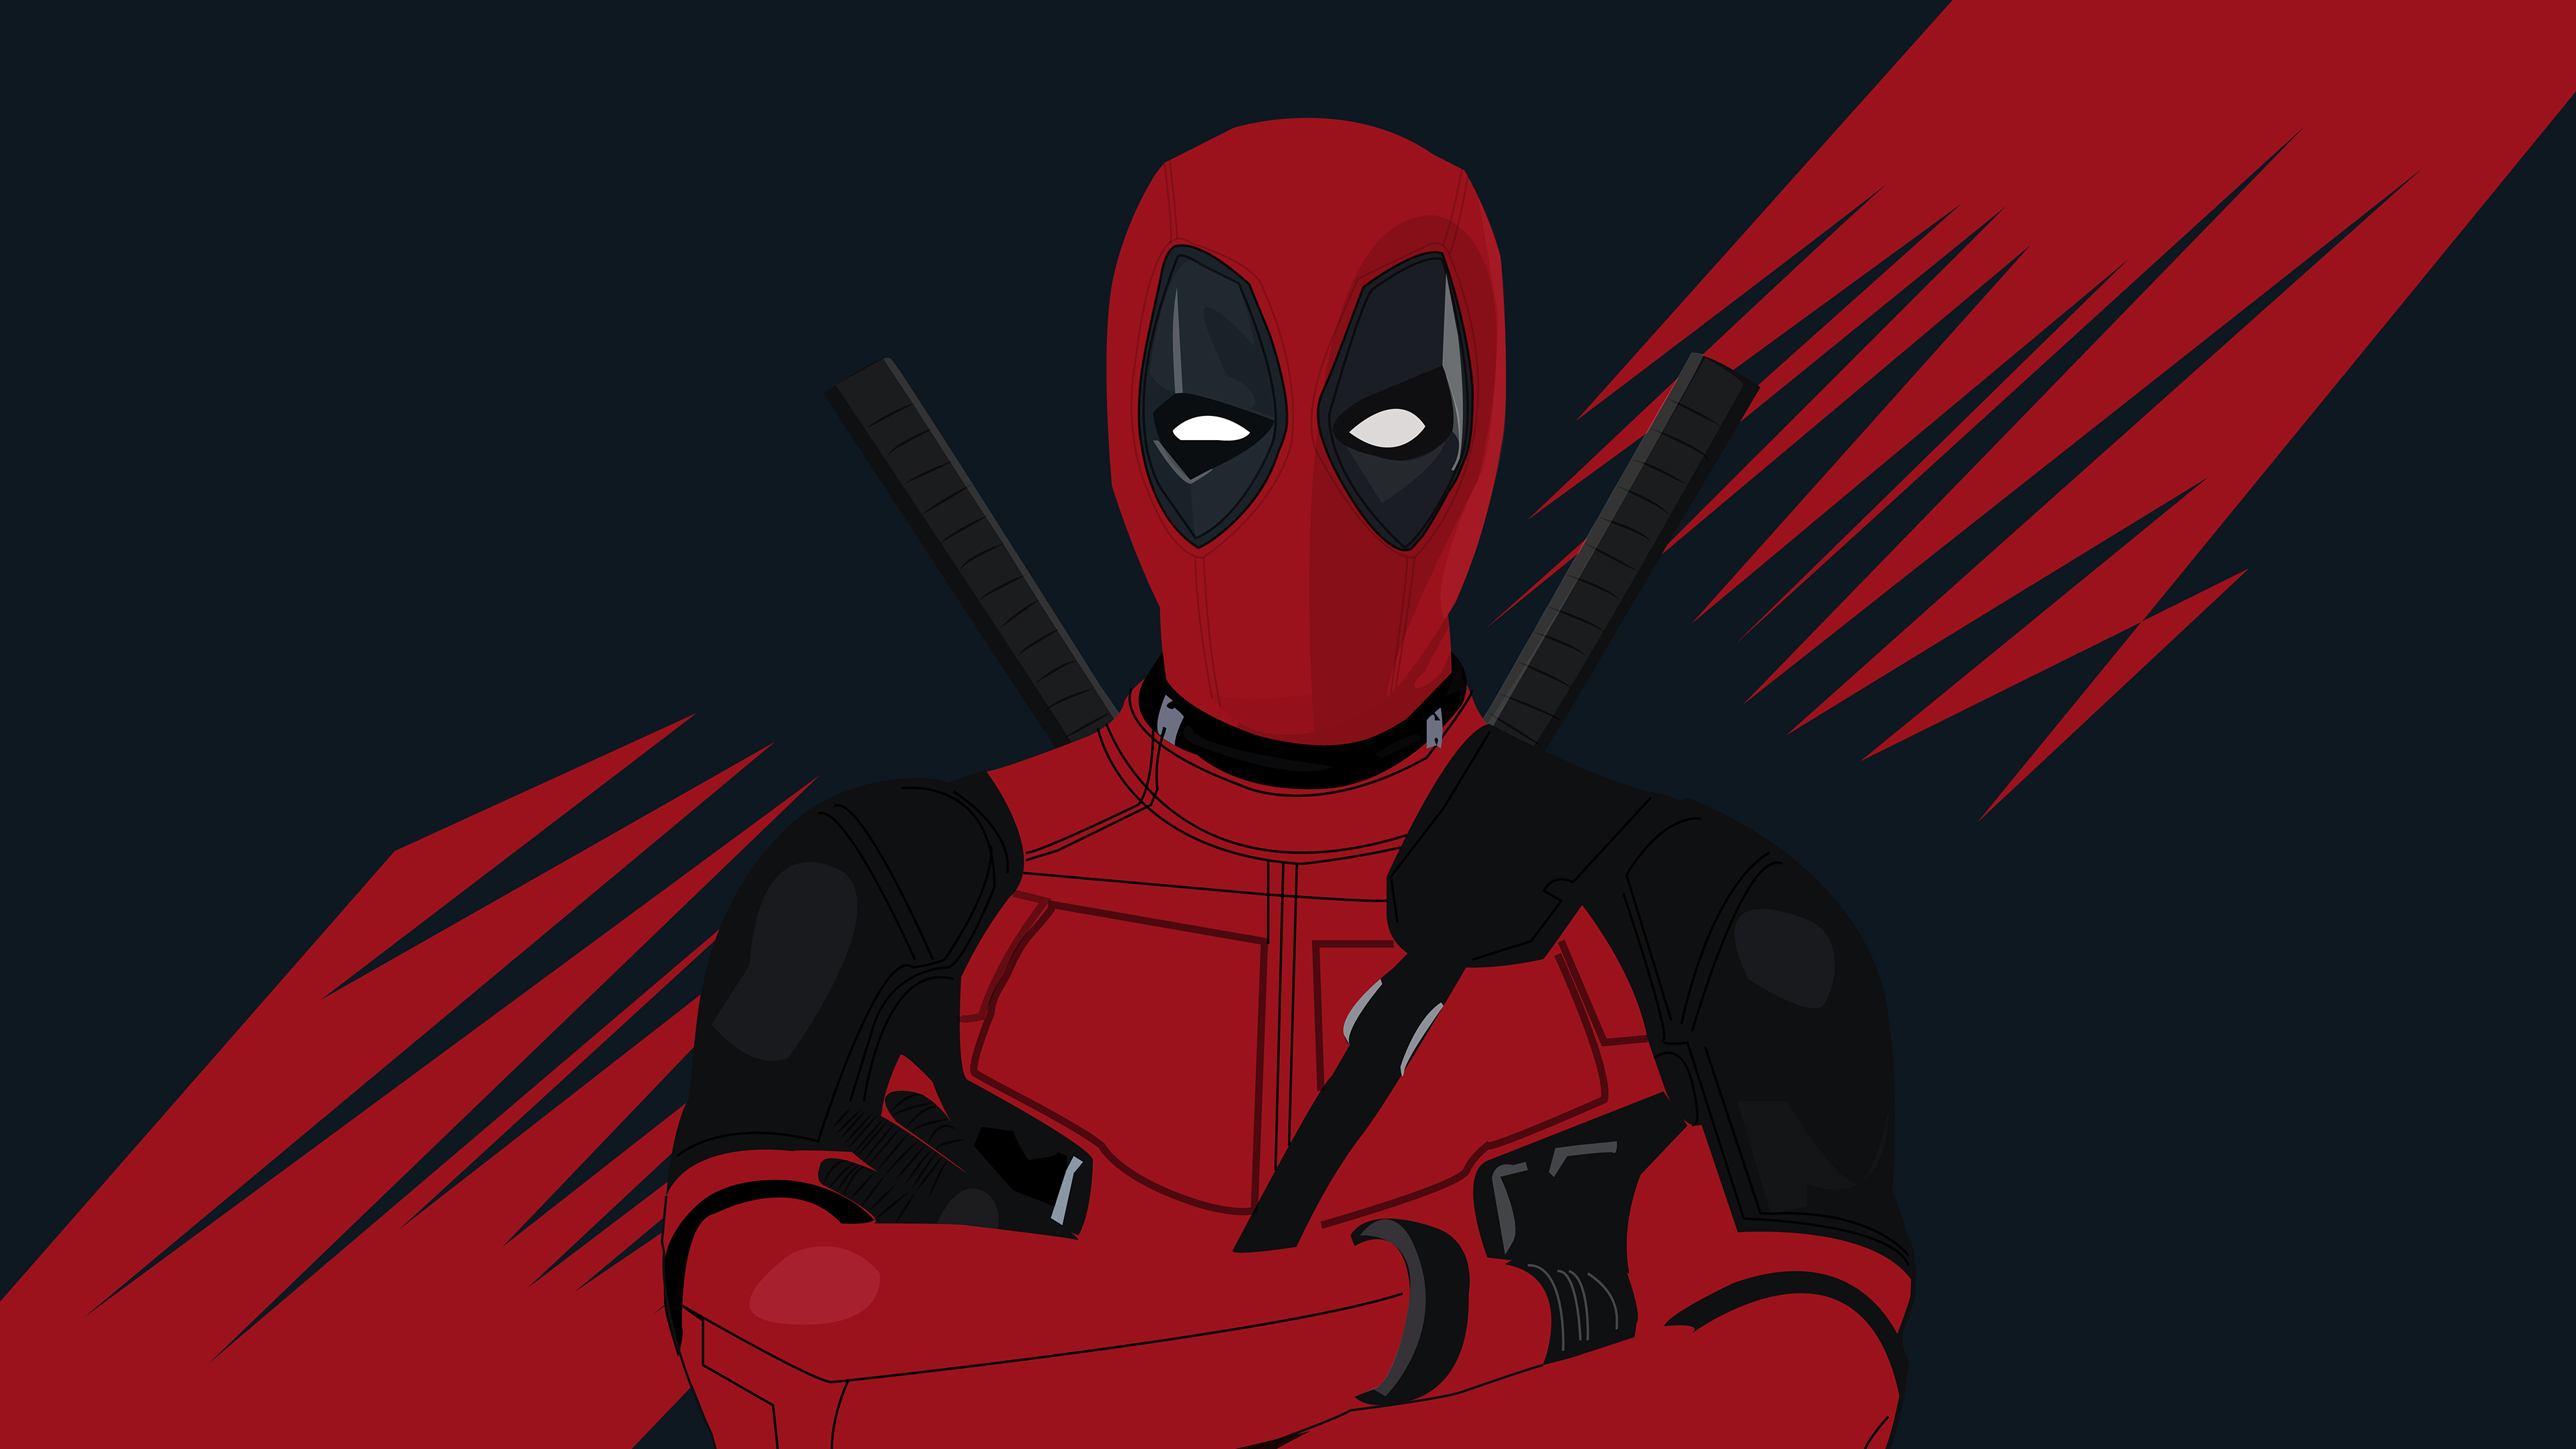 Wallpaper 4k 4k Deadpool Minimal 2019 4k wallpapers artist